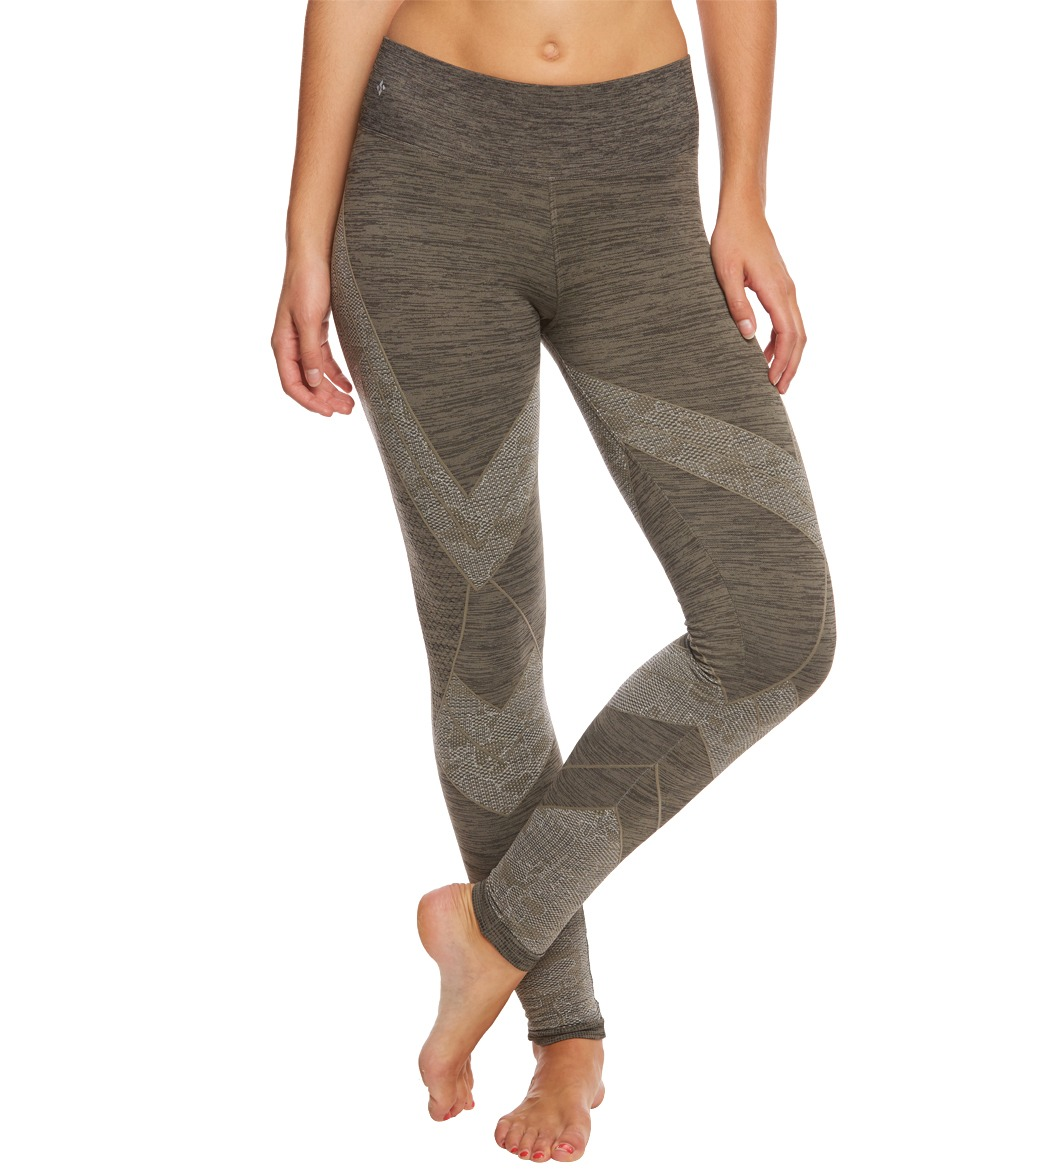 d514f708fb37e NUX Mckenzie Seamless Yoga Leggings at YogaOutlet.com - Free Shipping